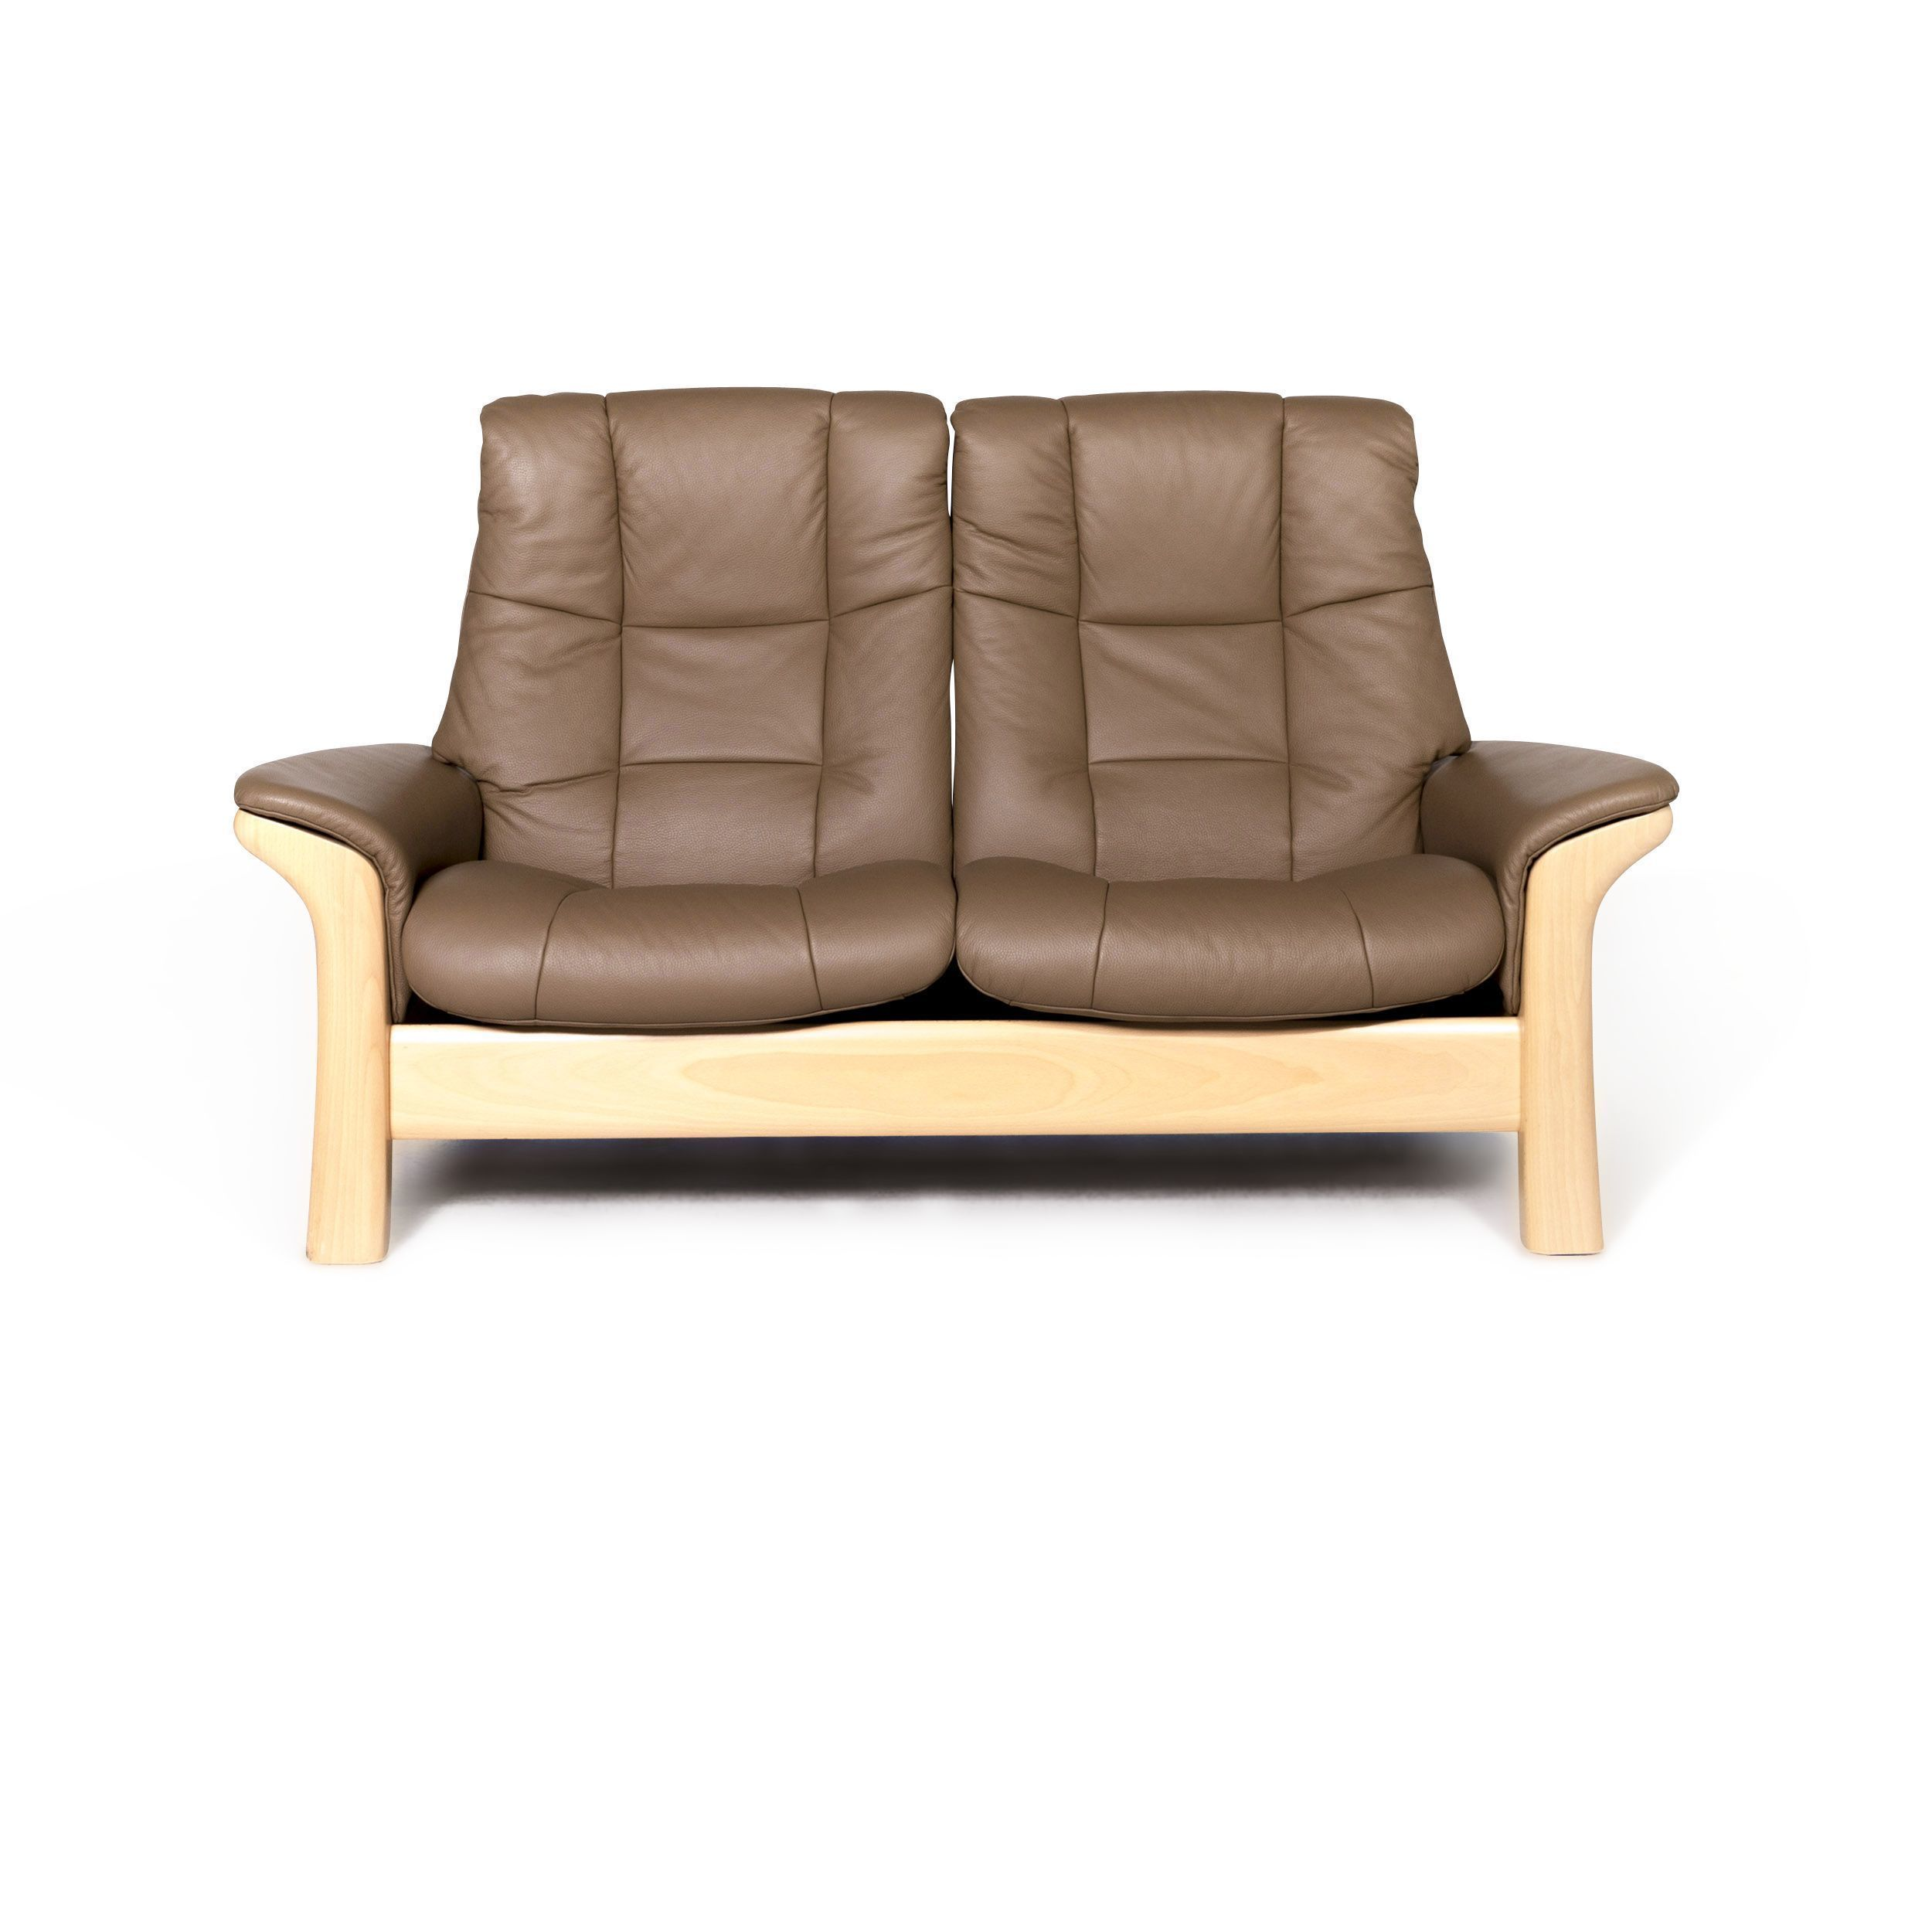 Leather Sofa Beige Real